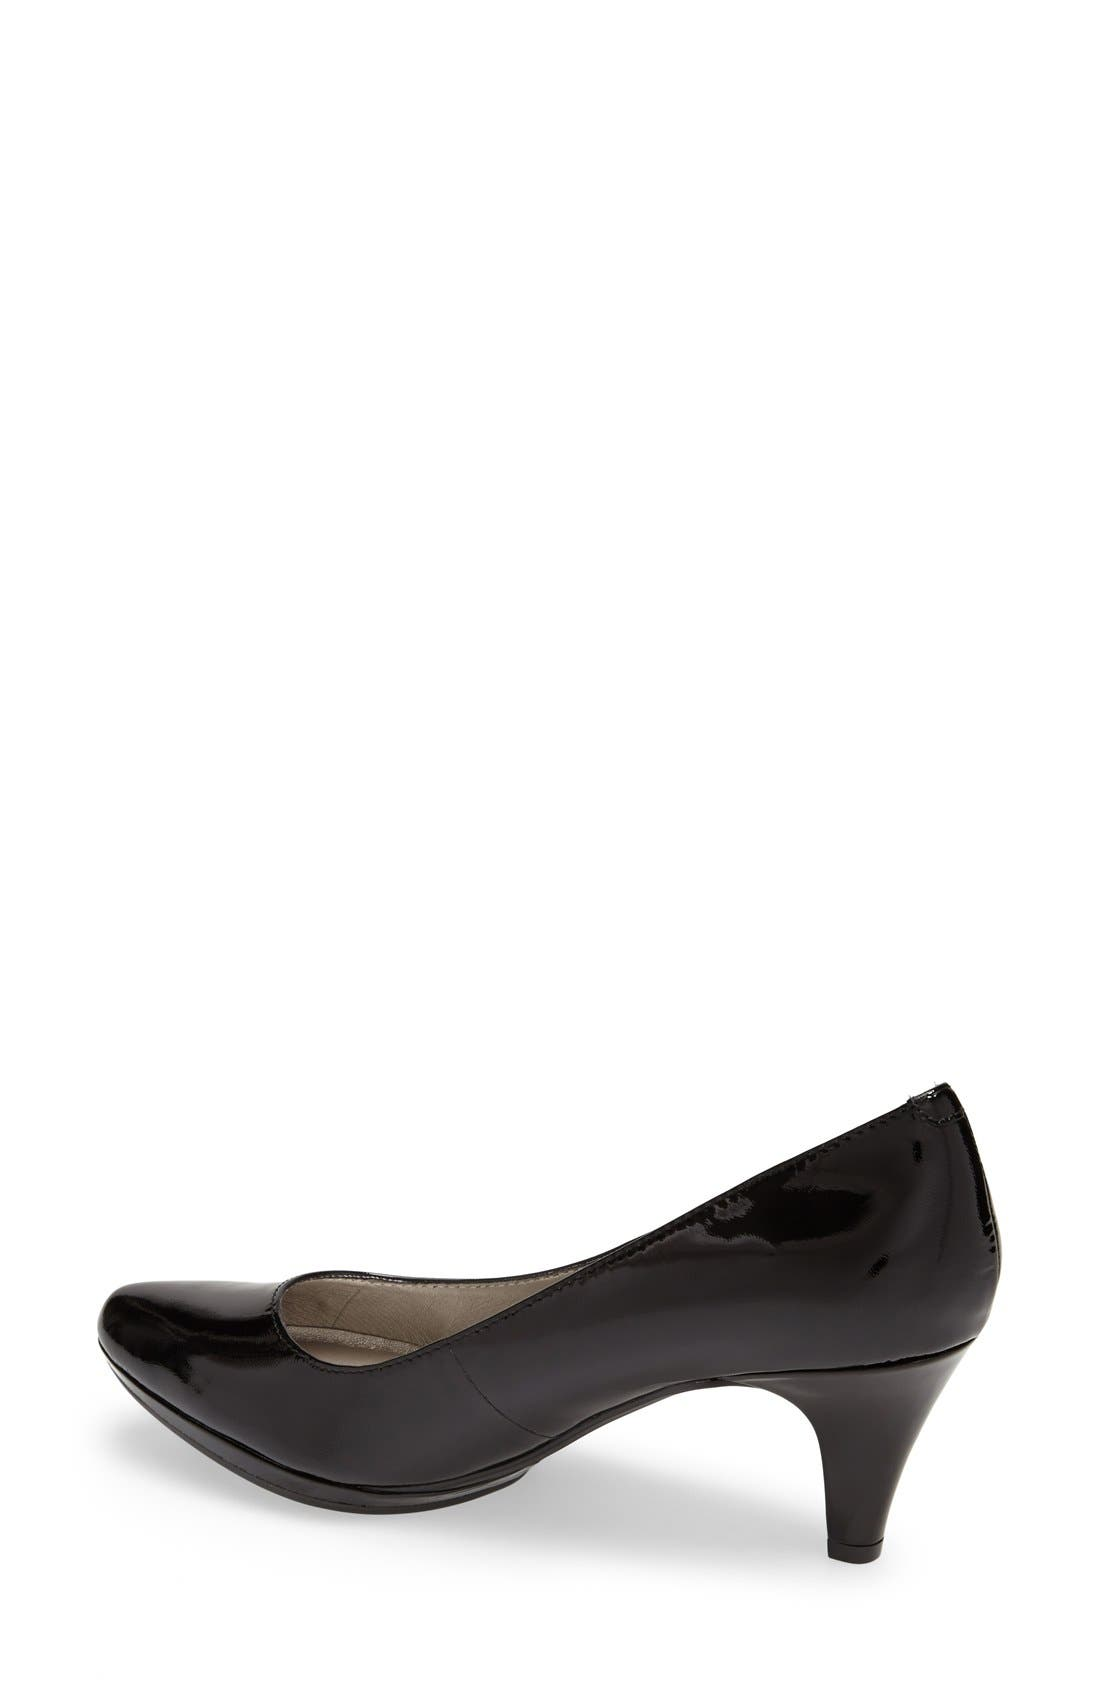 Alternate Image 2  - Me Too 'Andrea' Patent Leather Pump (Women)